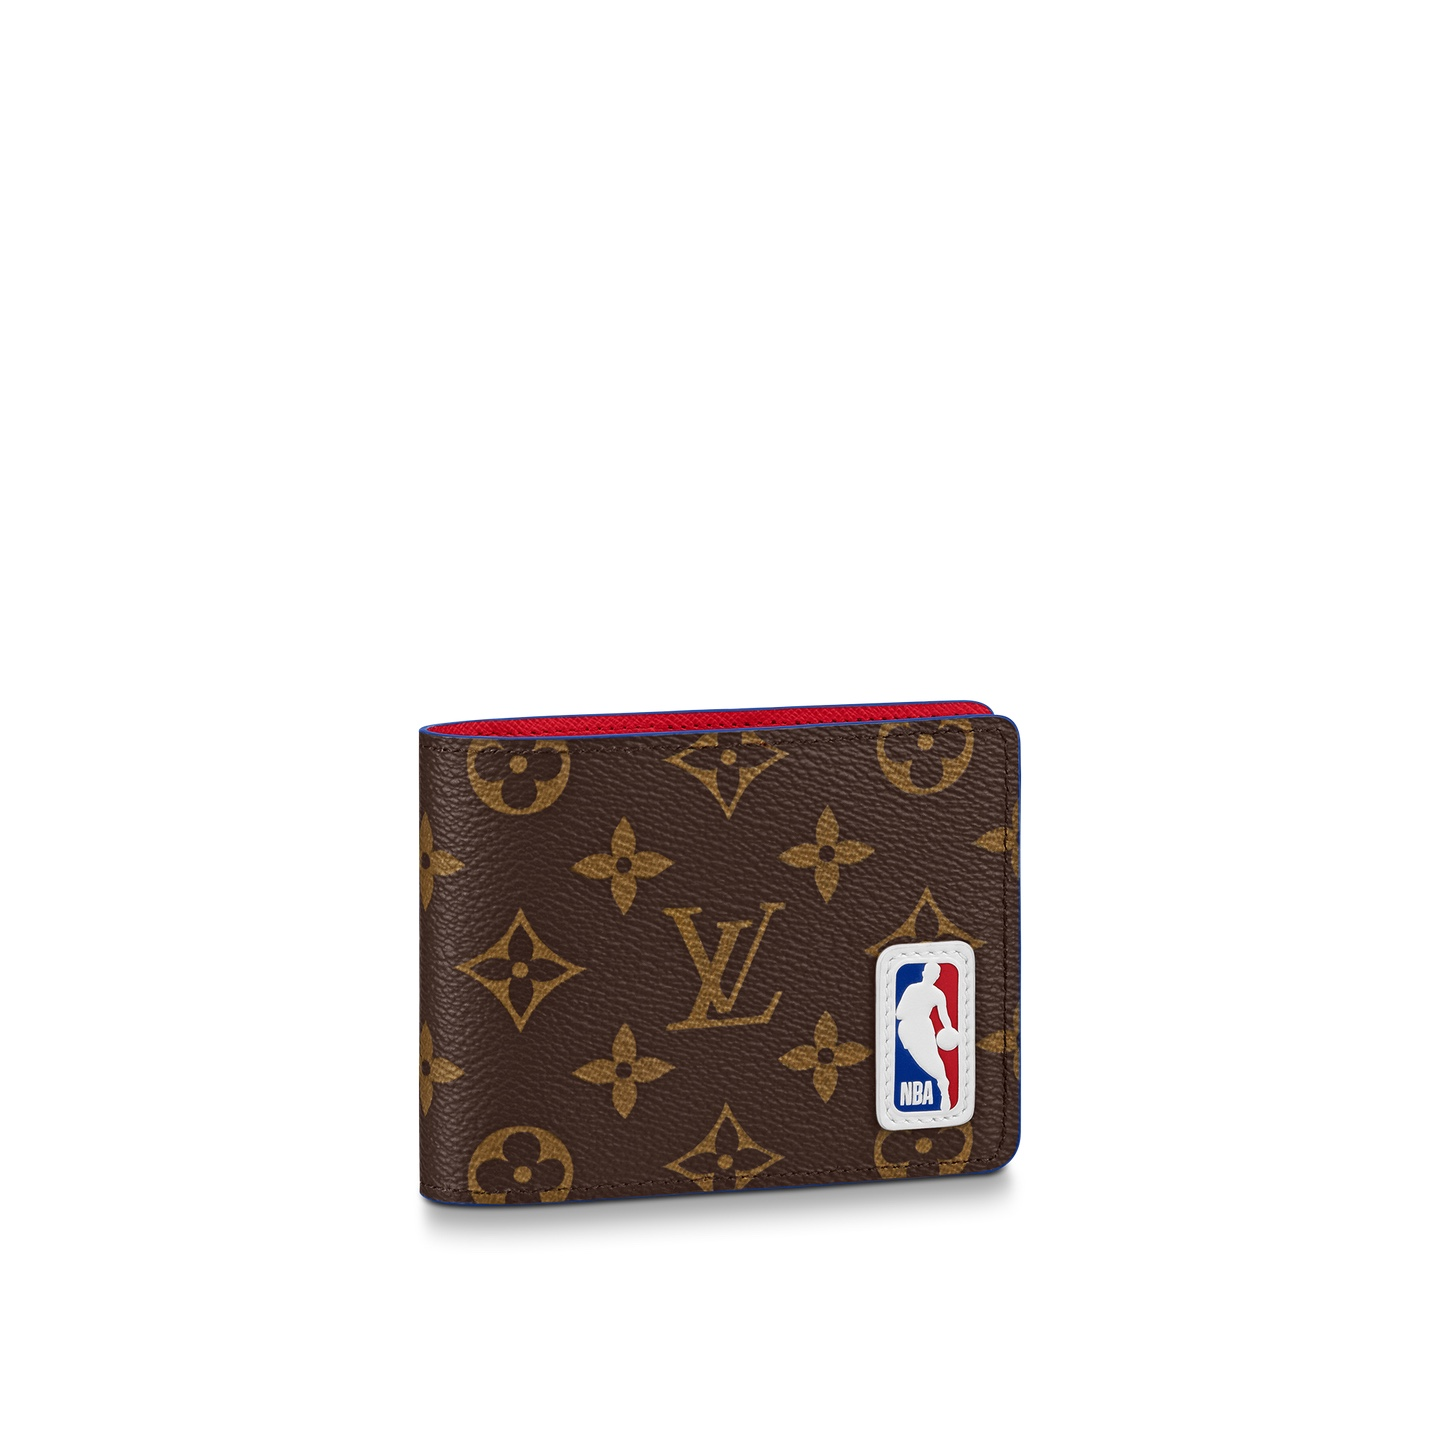 Louis Vuitton x NBA